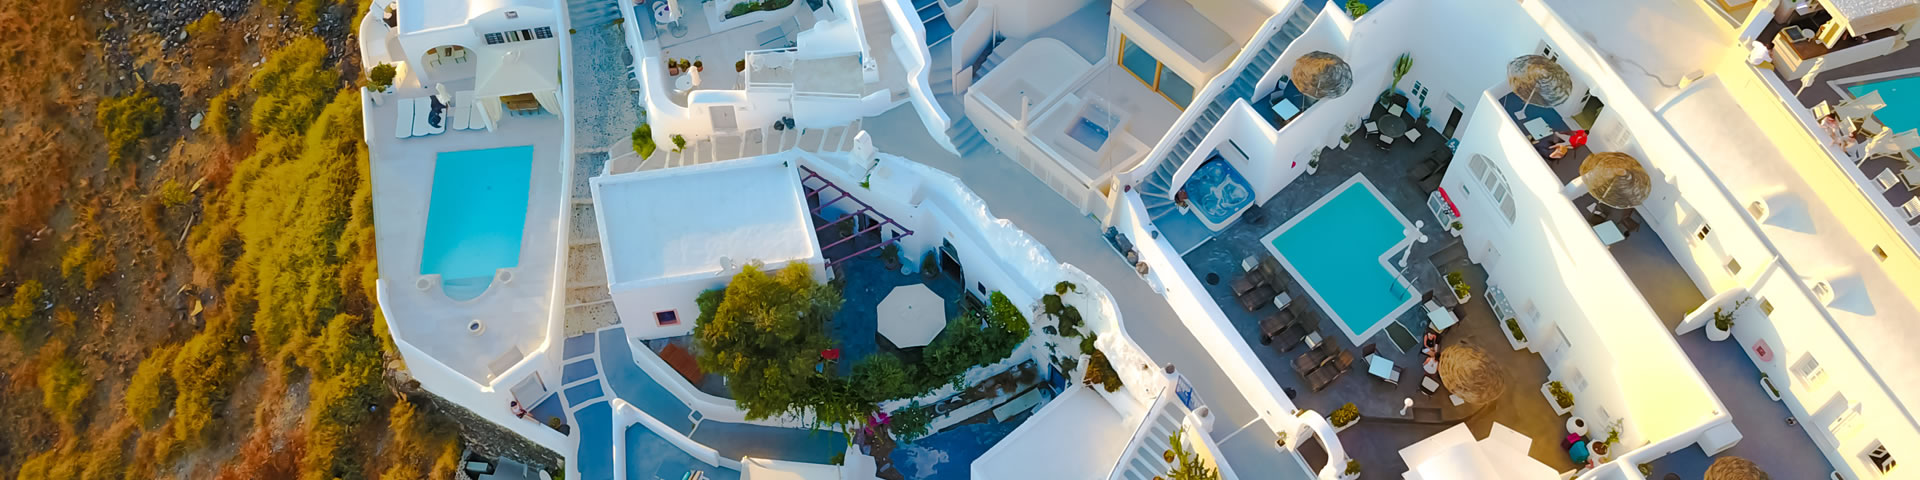 Santorini accommodation, tips for hotel booking